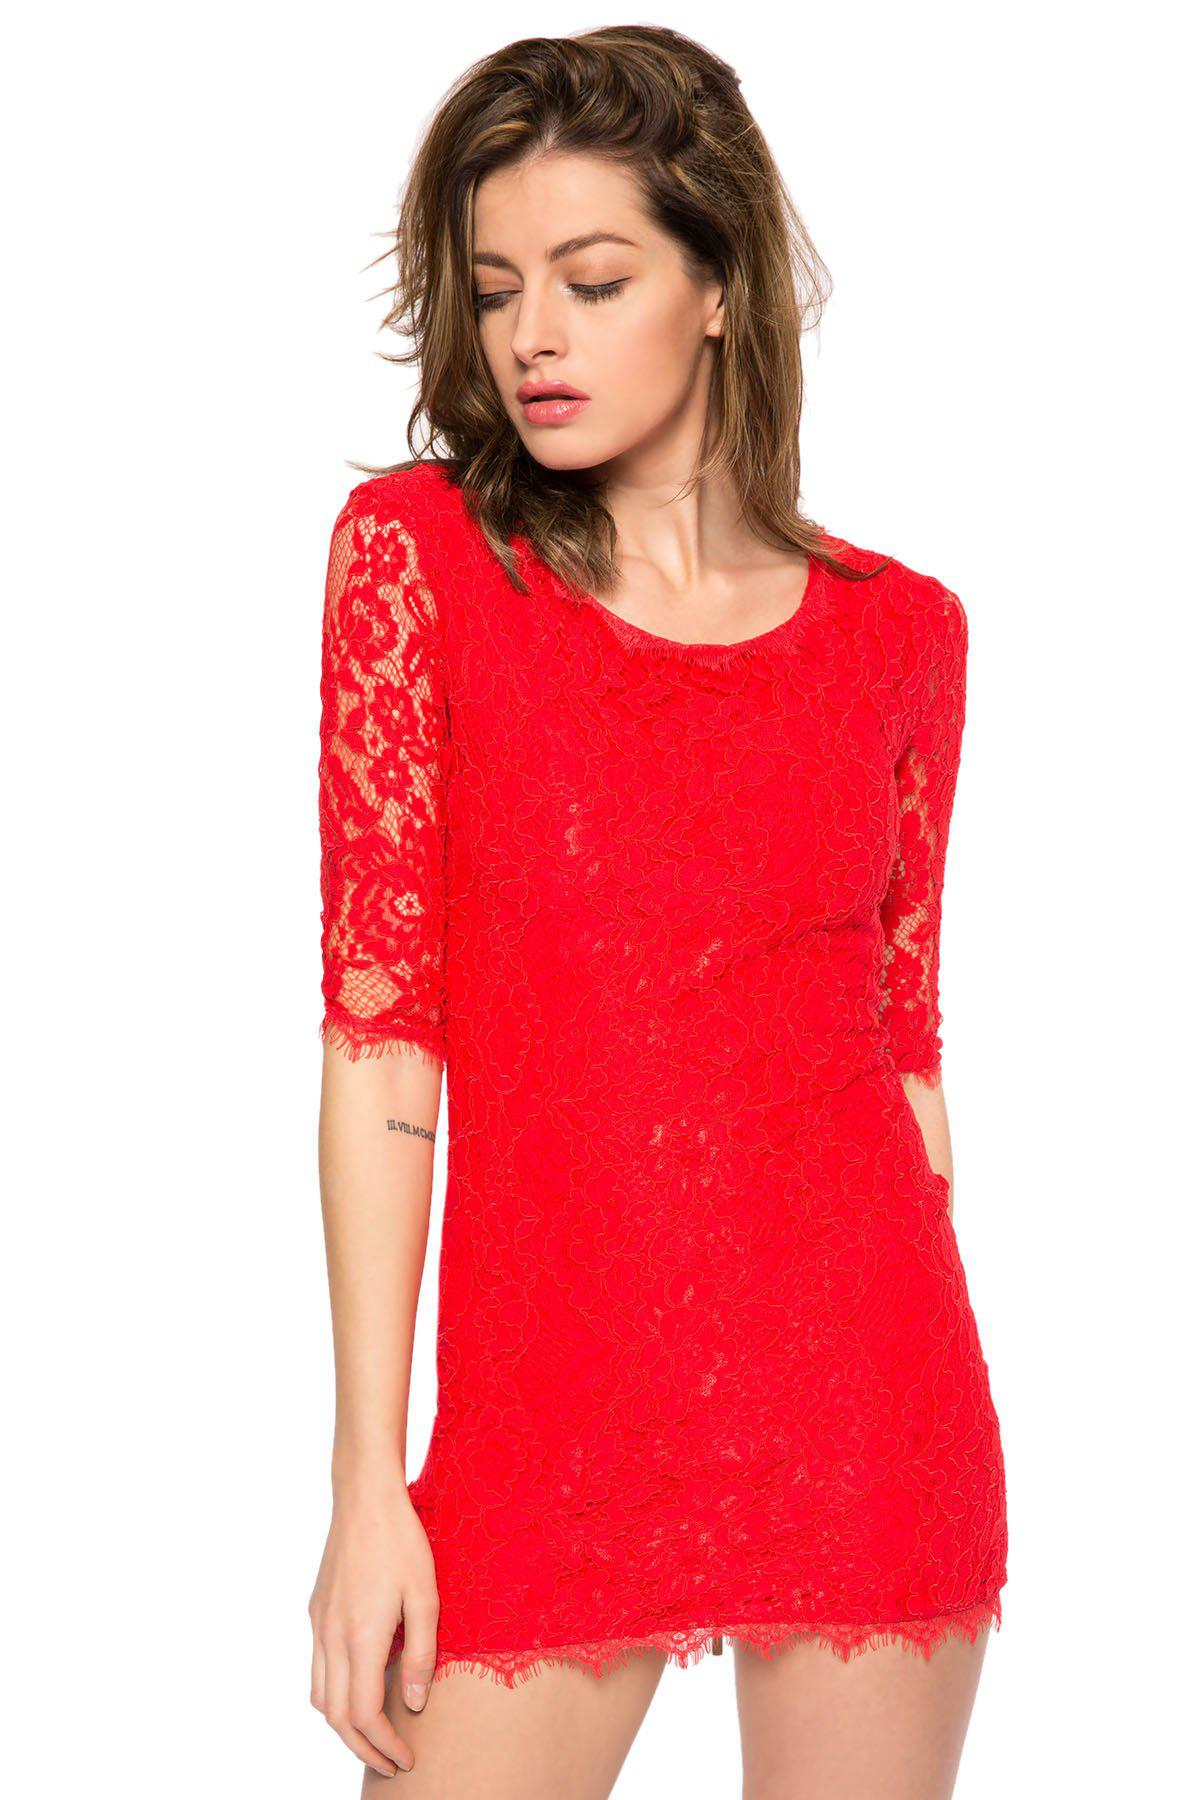 Trendy Style Scoop Collar 3/4 Sleeve Solid Color Slimming Women's Lace Dress - RED L